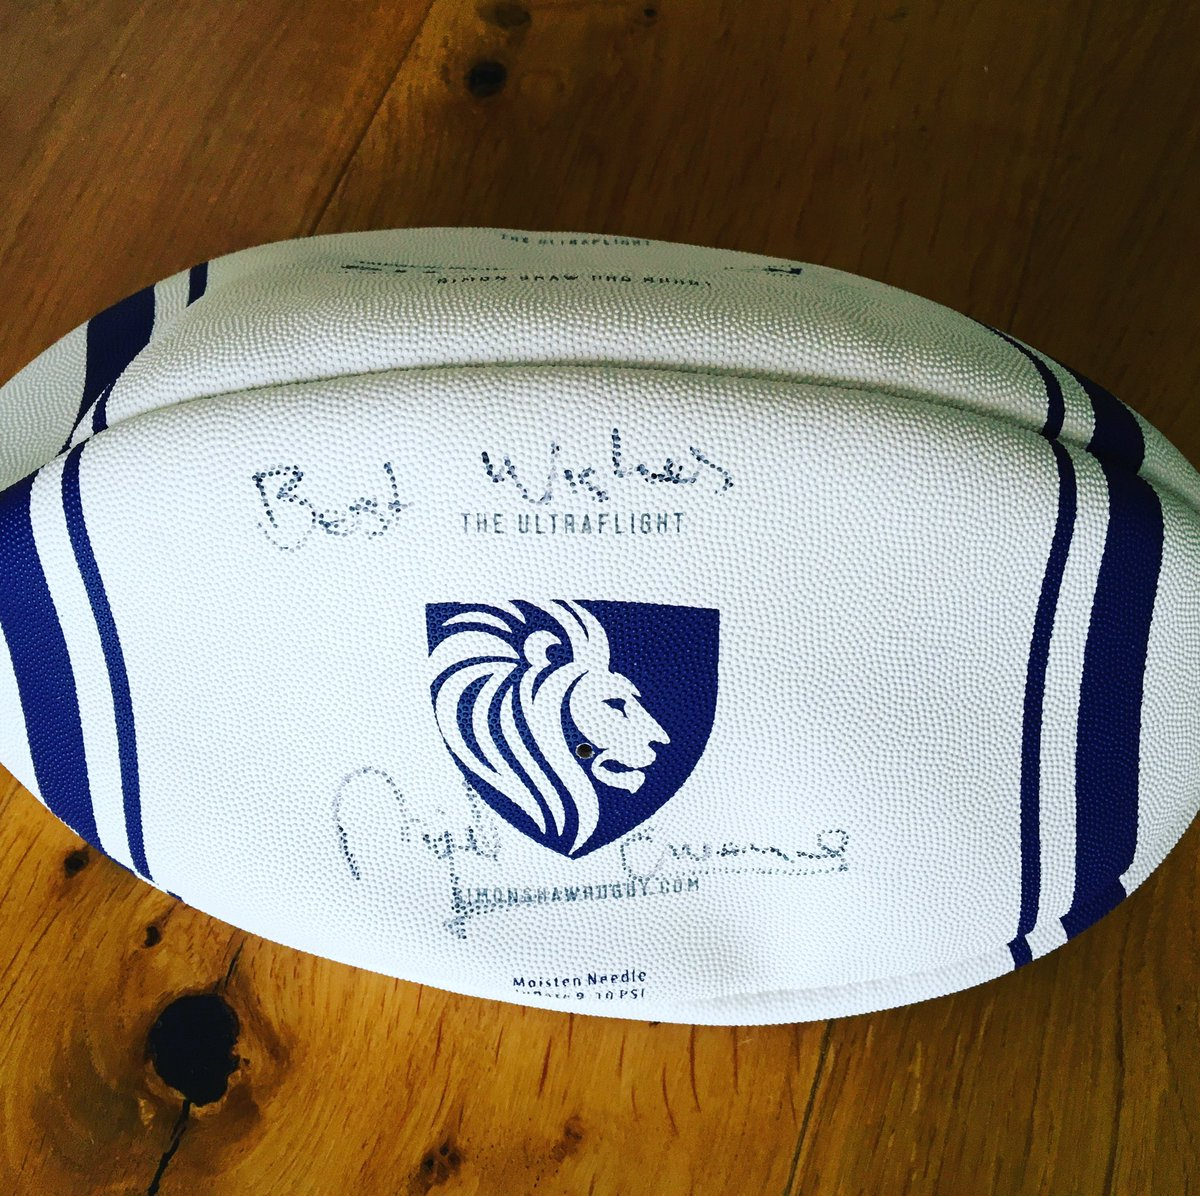 Delighted to say that we will be supporting @BulliesOut with proceeds from the sale of ball signed by @Nigelrefowens https://inmylocker.co.uk/collections/signed-kit…pic.twitter.com/WxkUKs8rgo